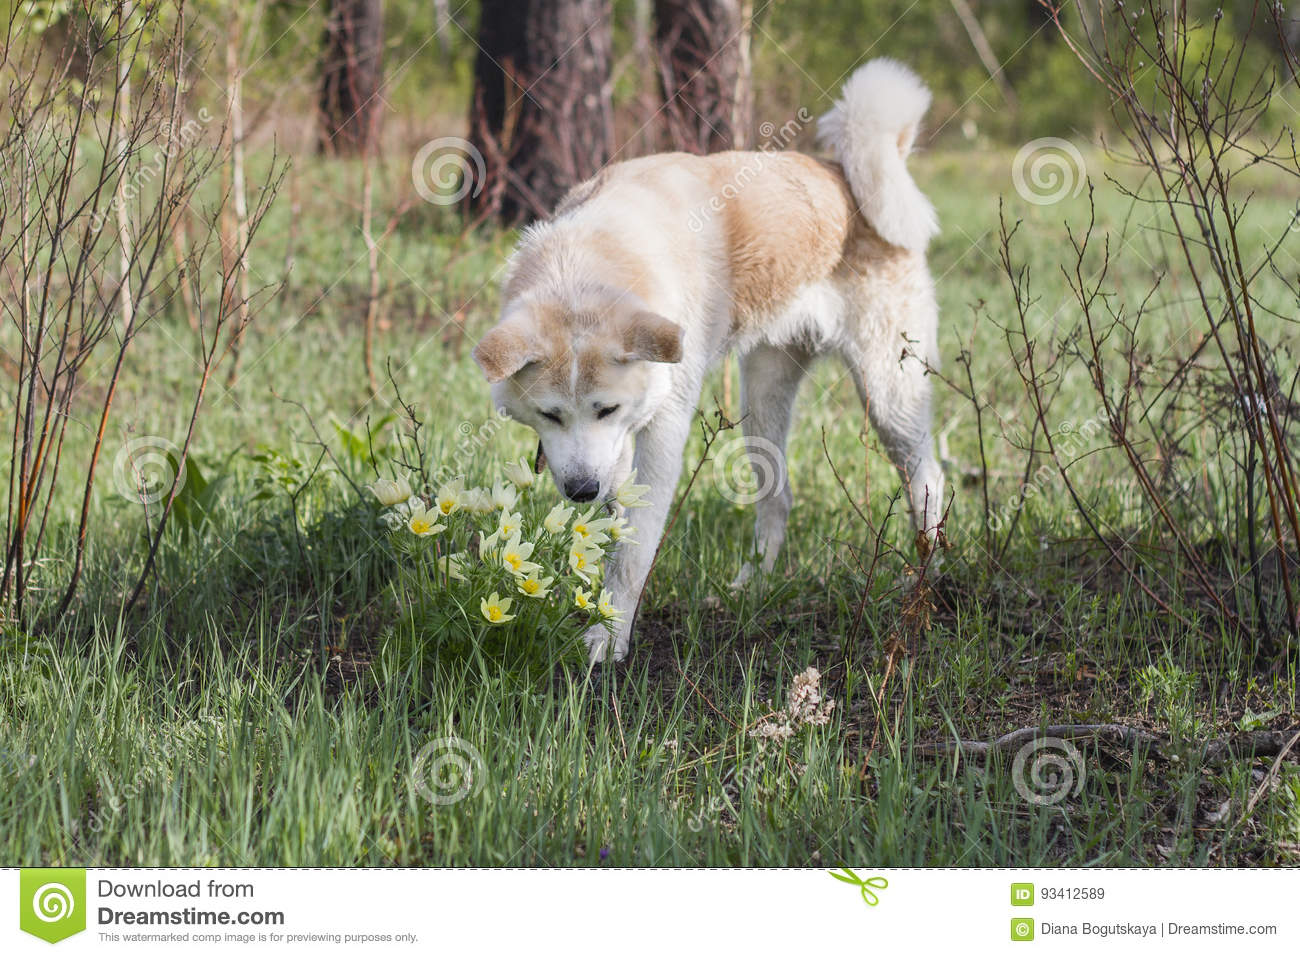 A lovely beautiful Japanese Akita Inu sniffs flowers of yellow snowdrops in the forest in spring among grass and trees.